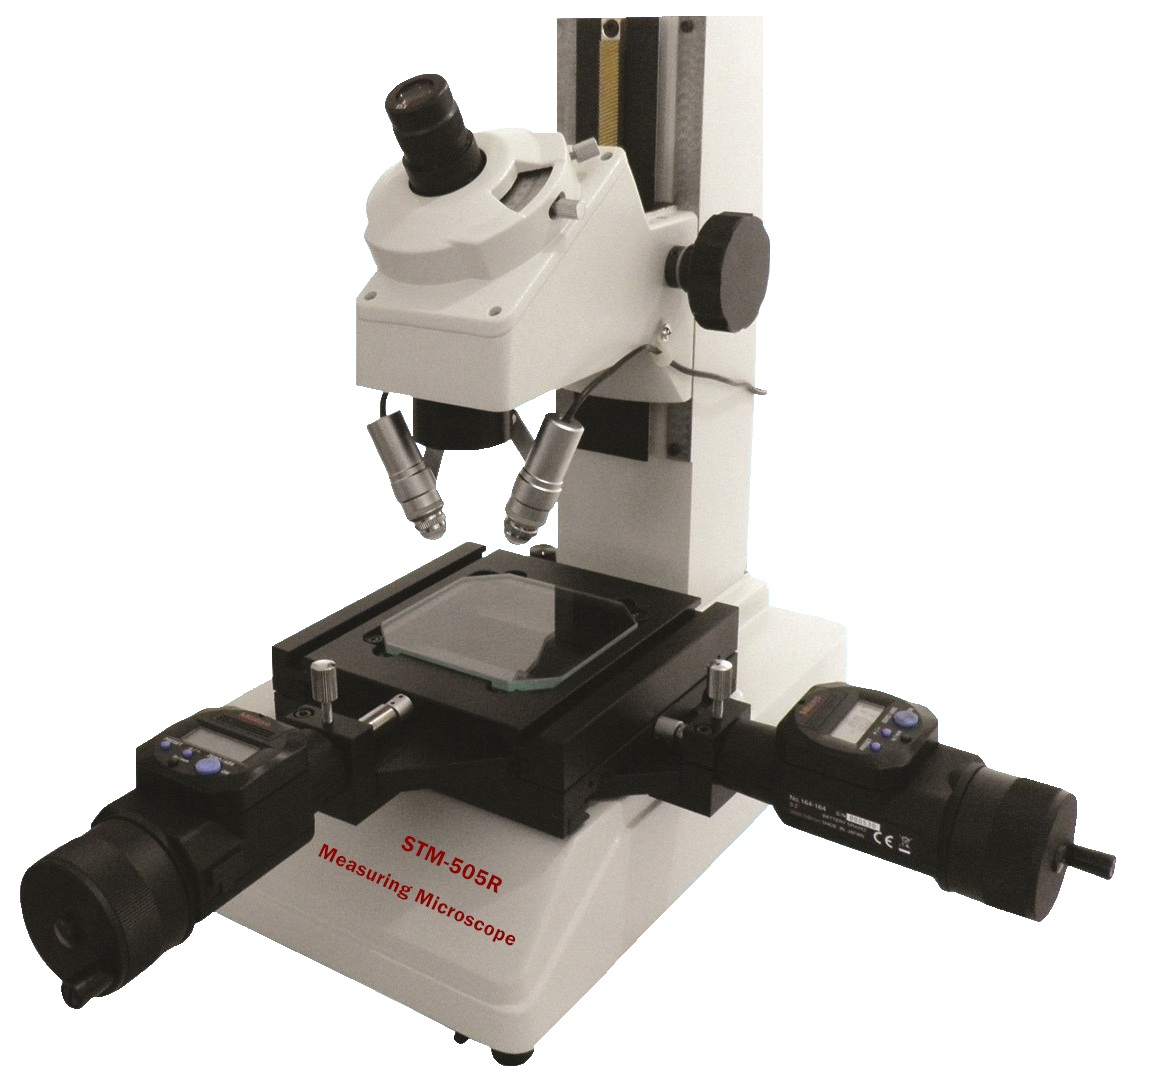 Tool-Maker's Microscopes STM-505R